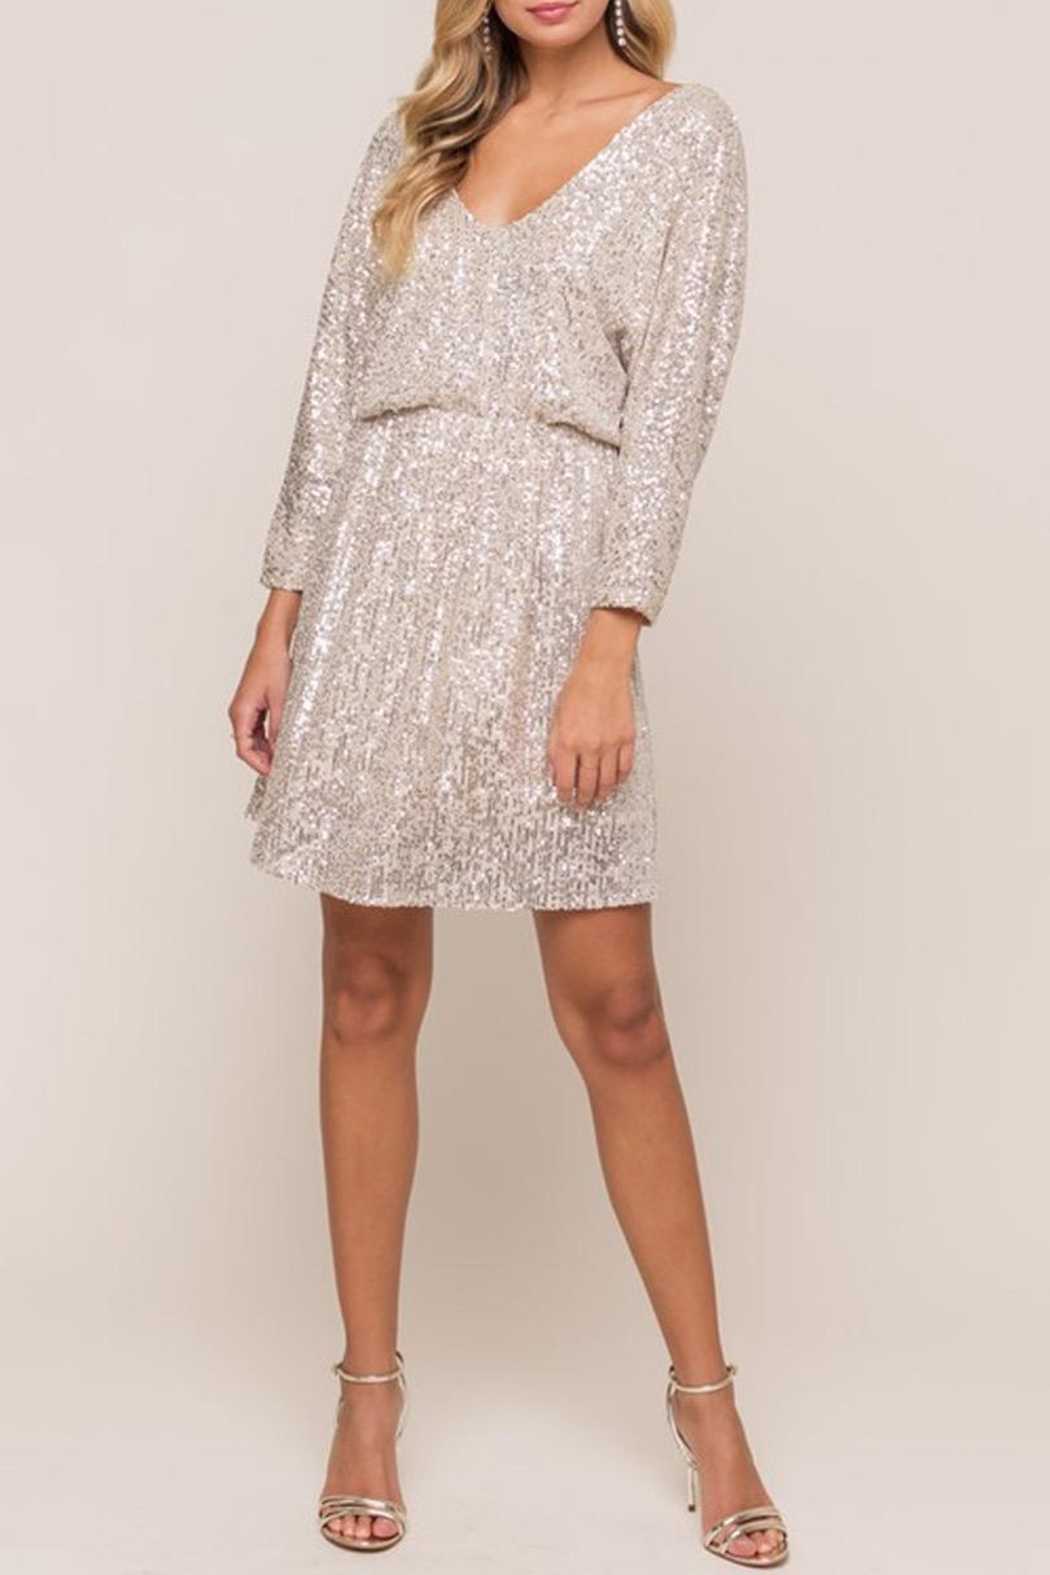 Lush Silver Sequin Mini-Dress - Side Cropped Image